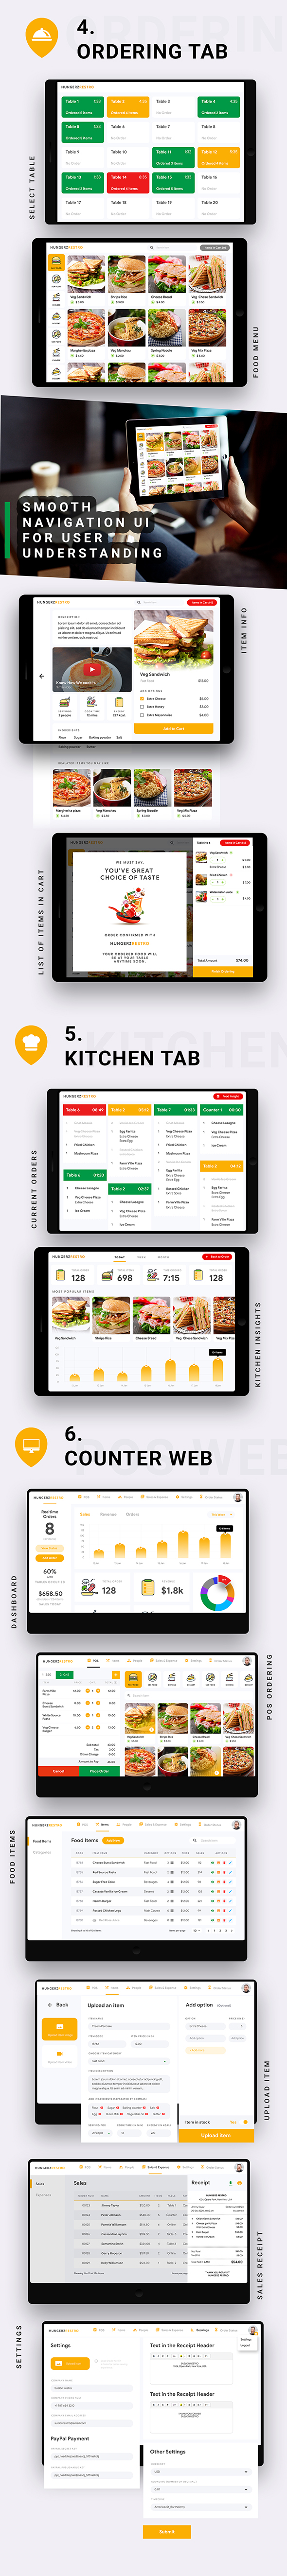 6 in 1 multi Restaurant Food Ordering App|Food Delivery App|Android+iOS App Template|Flutter Hungerz - 12